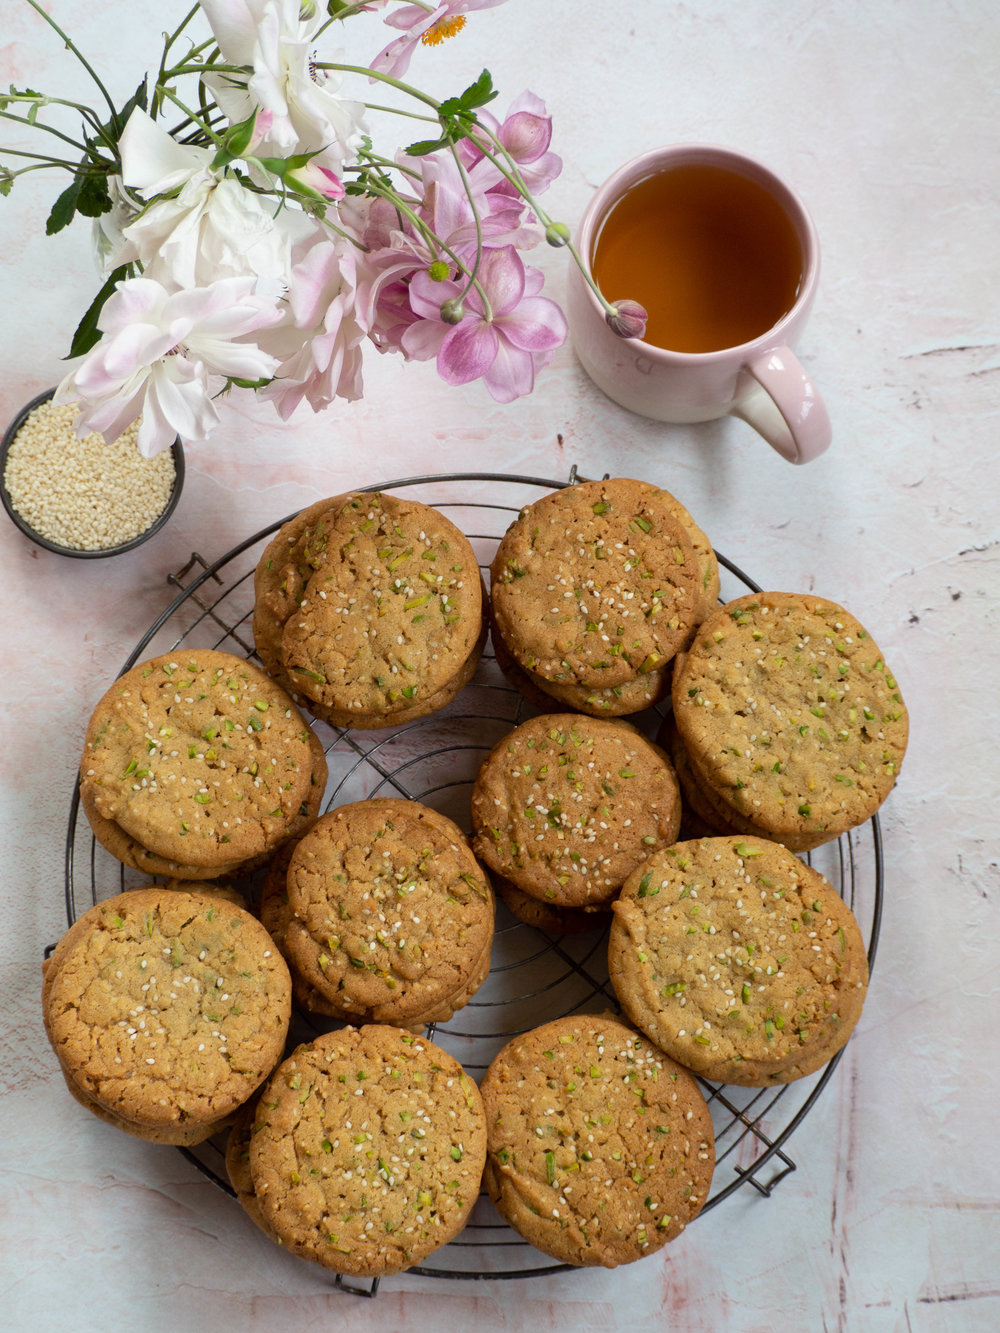 Syrian Inspired Sesame and Pistachio Biscuits